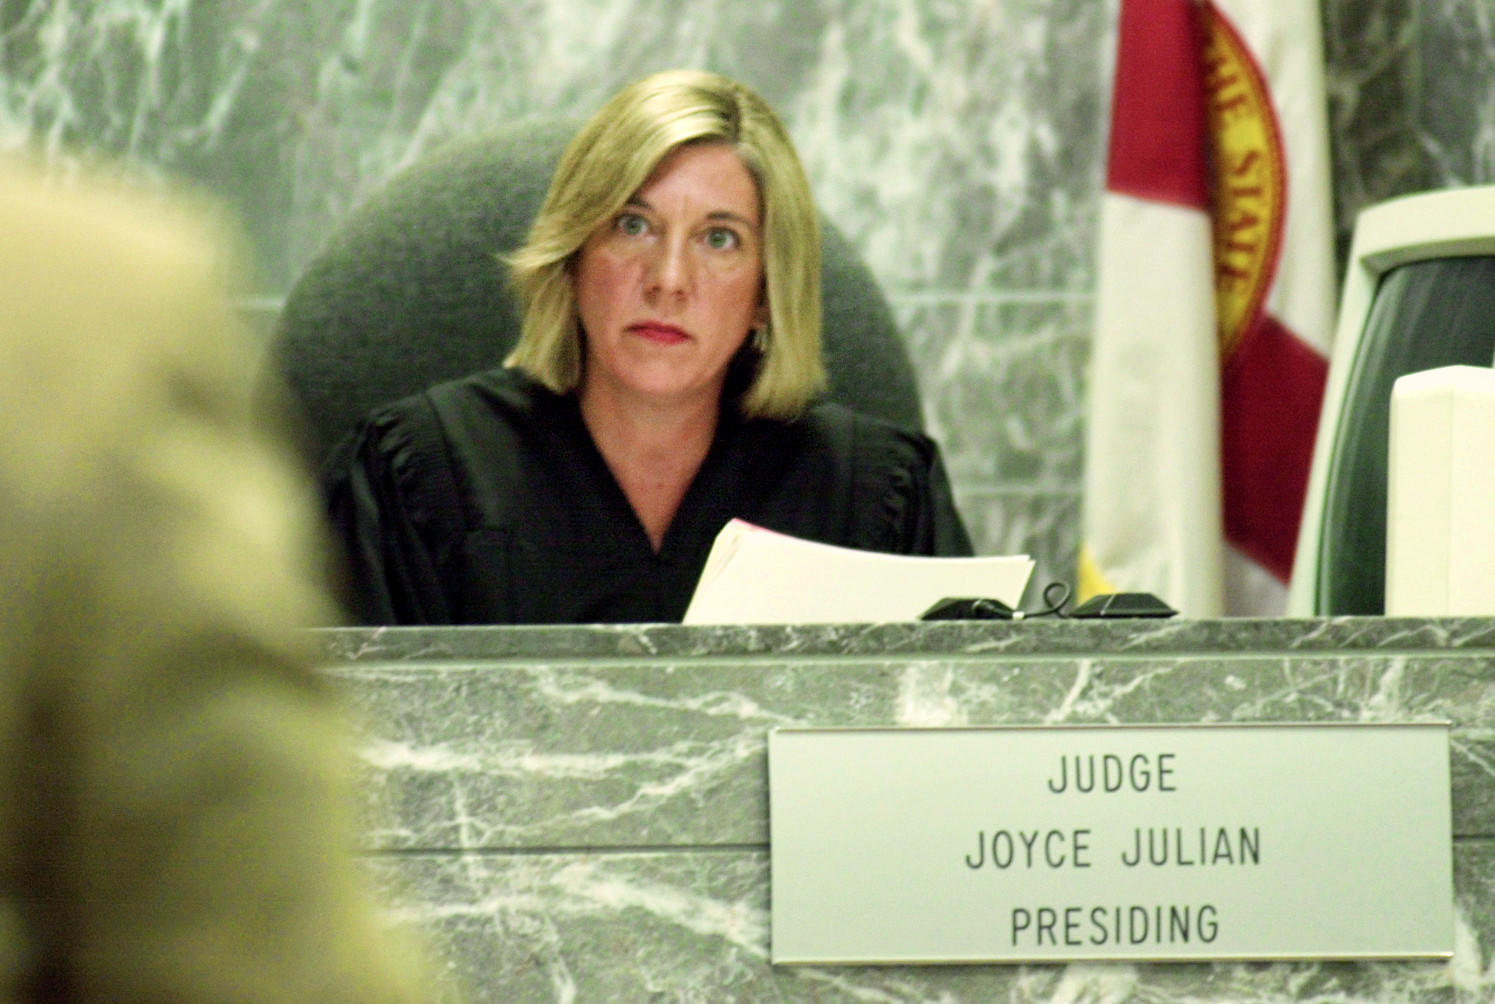 """Former Broward Circuit Judge Joyce Jullian was arrested in 2001 on suspicion of disorderly conduct at an Amelia Island judicial conference. In 2002, in documents filed in response to a state Judicial Qualifications Commission complaint, she acknowledged she was """"extremely intoxicated"""" during the incident. Prosecutors dropped Julian's misdemeanor charges because she checked herself into an alcohol rehabilitation program."""